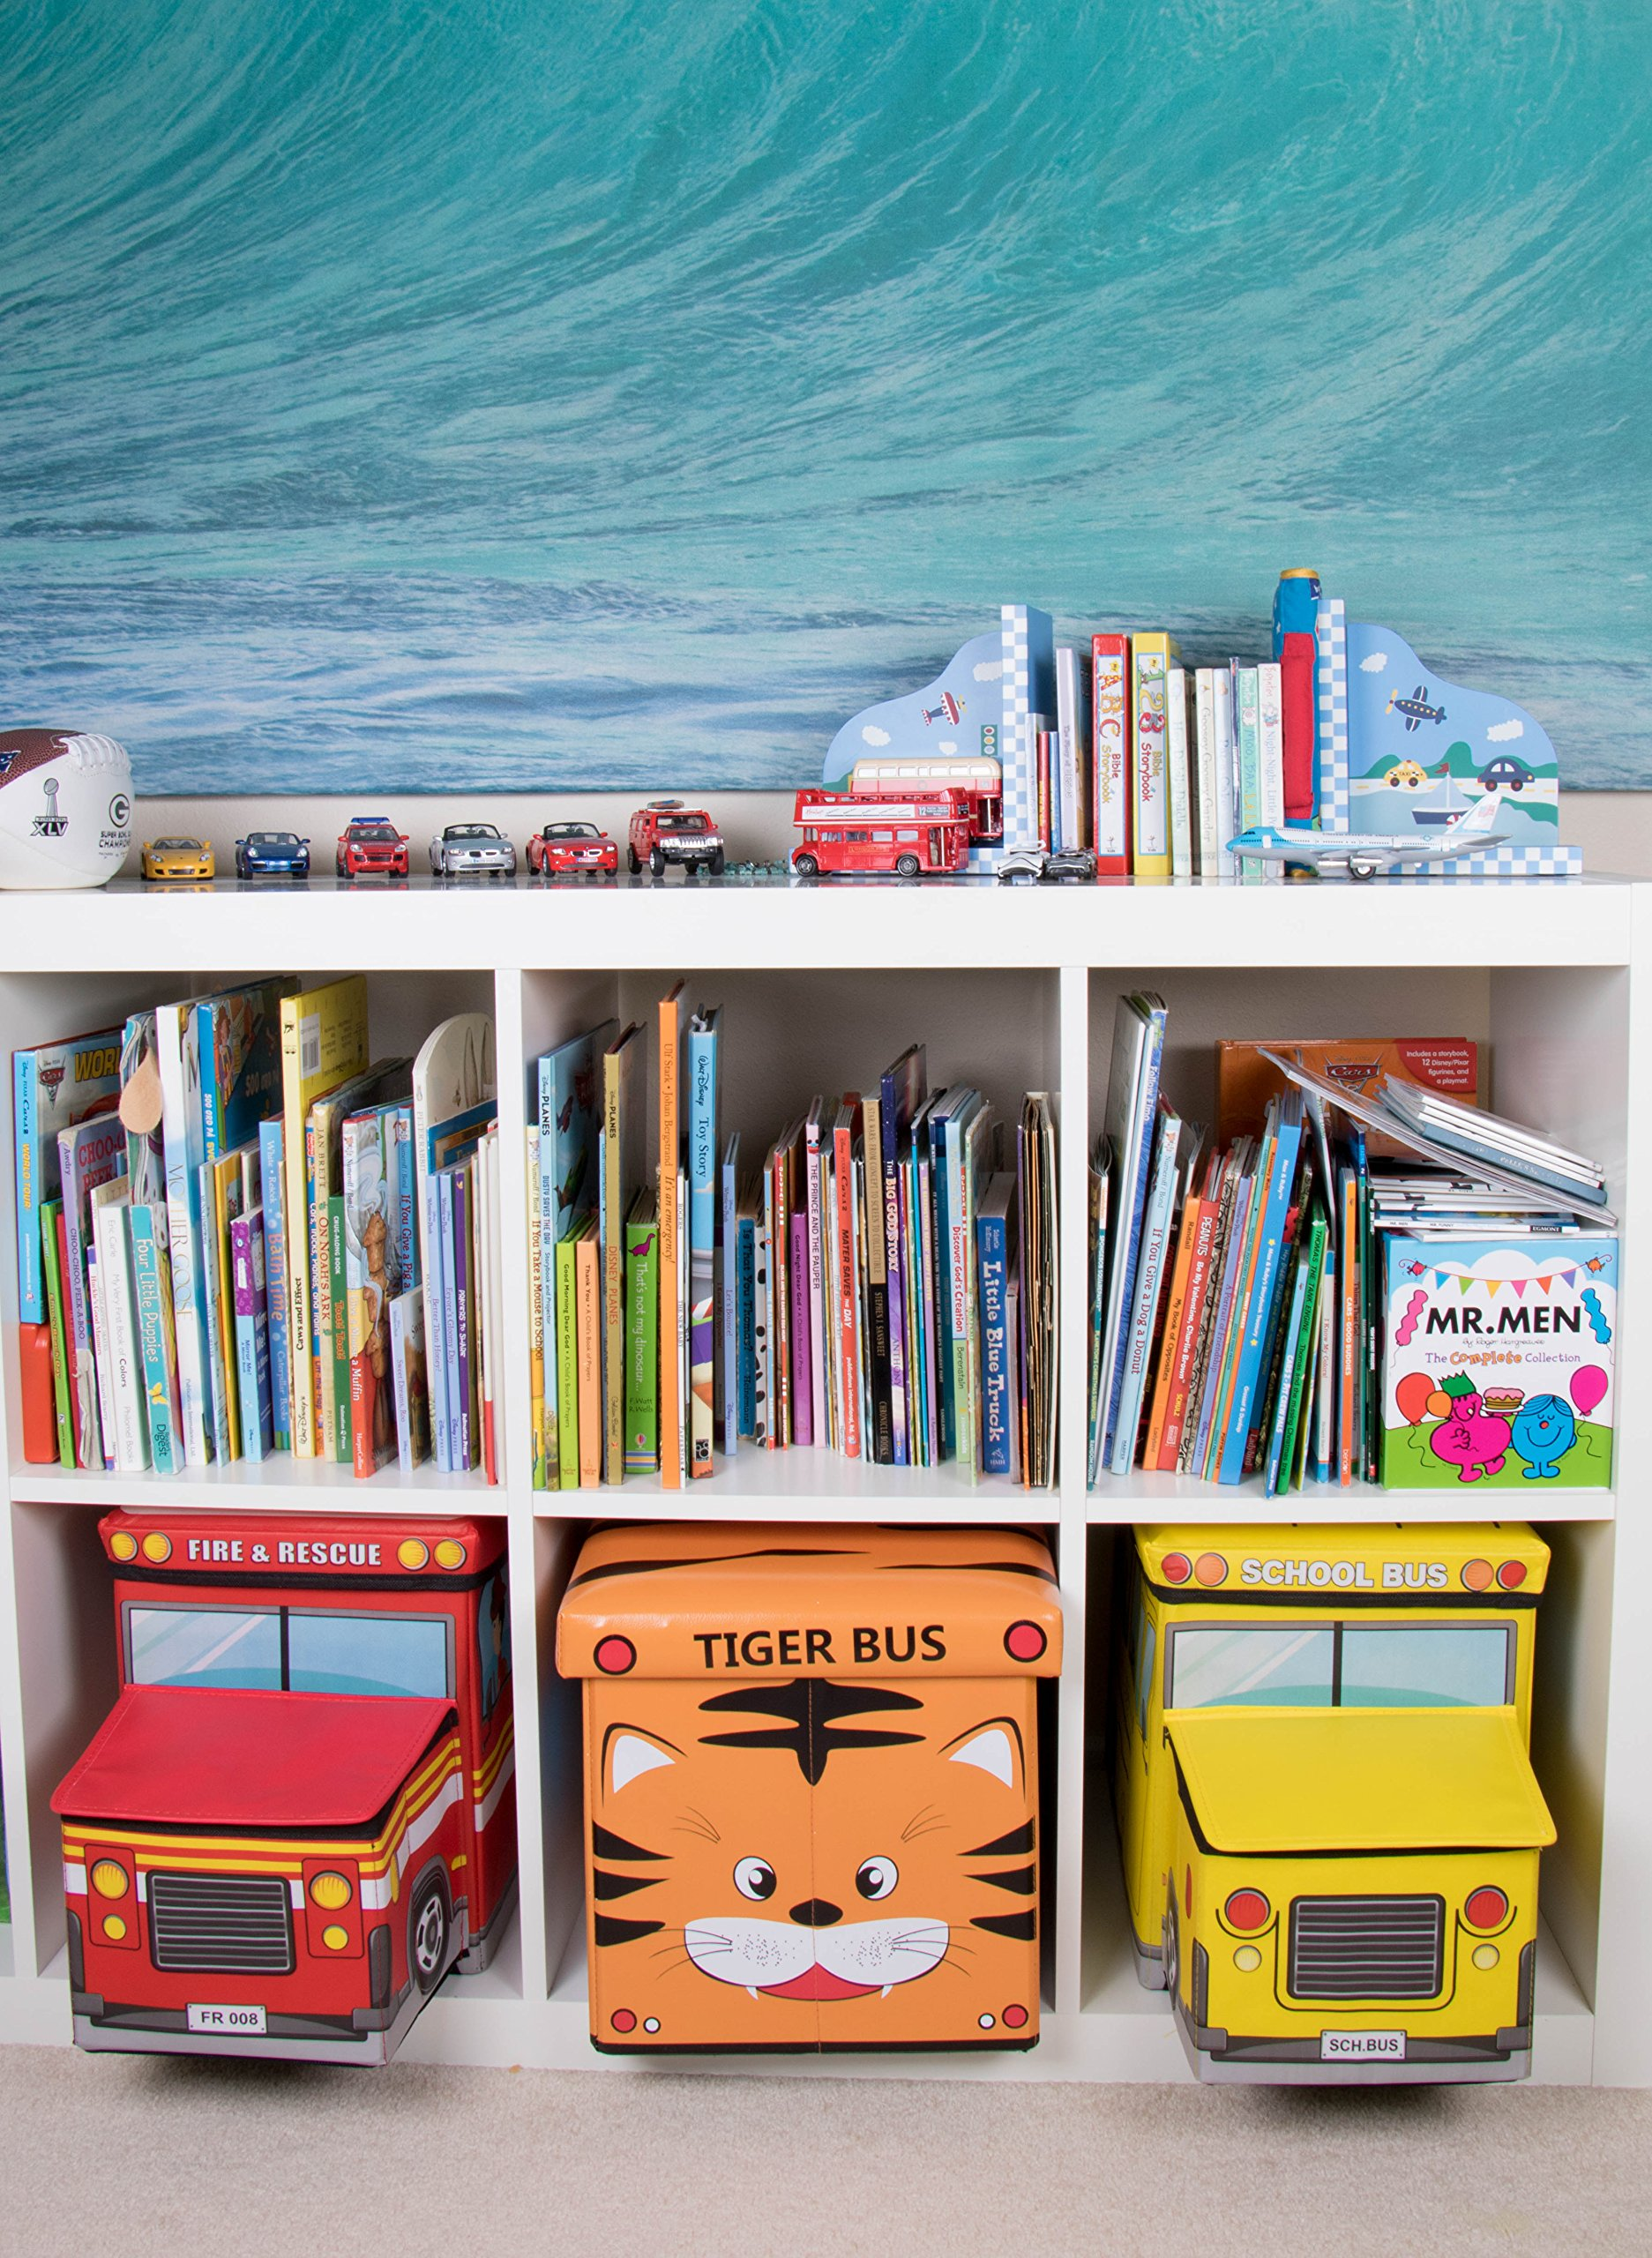 Safari Bus Collapsible Storage Organizer by Clever Creations | Storage Box Folding Storage Ottoman for Your Bedroom | Perfect Size Storage Chest for Books, Shoes & Games by Clever Creations (Image #7)